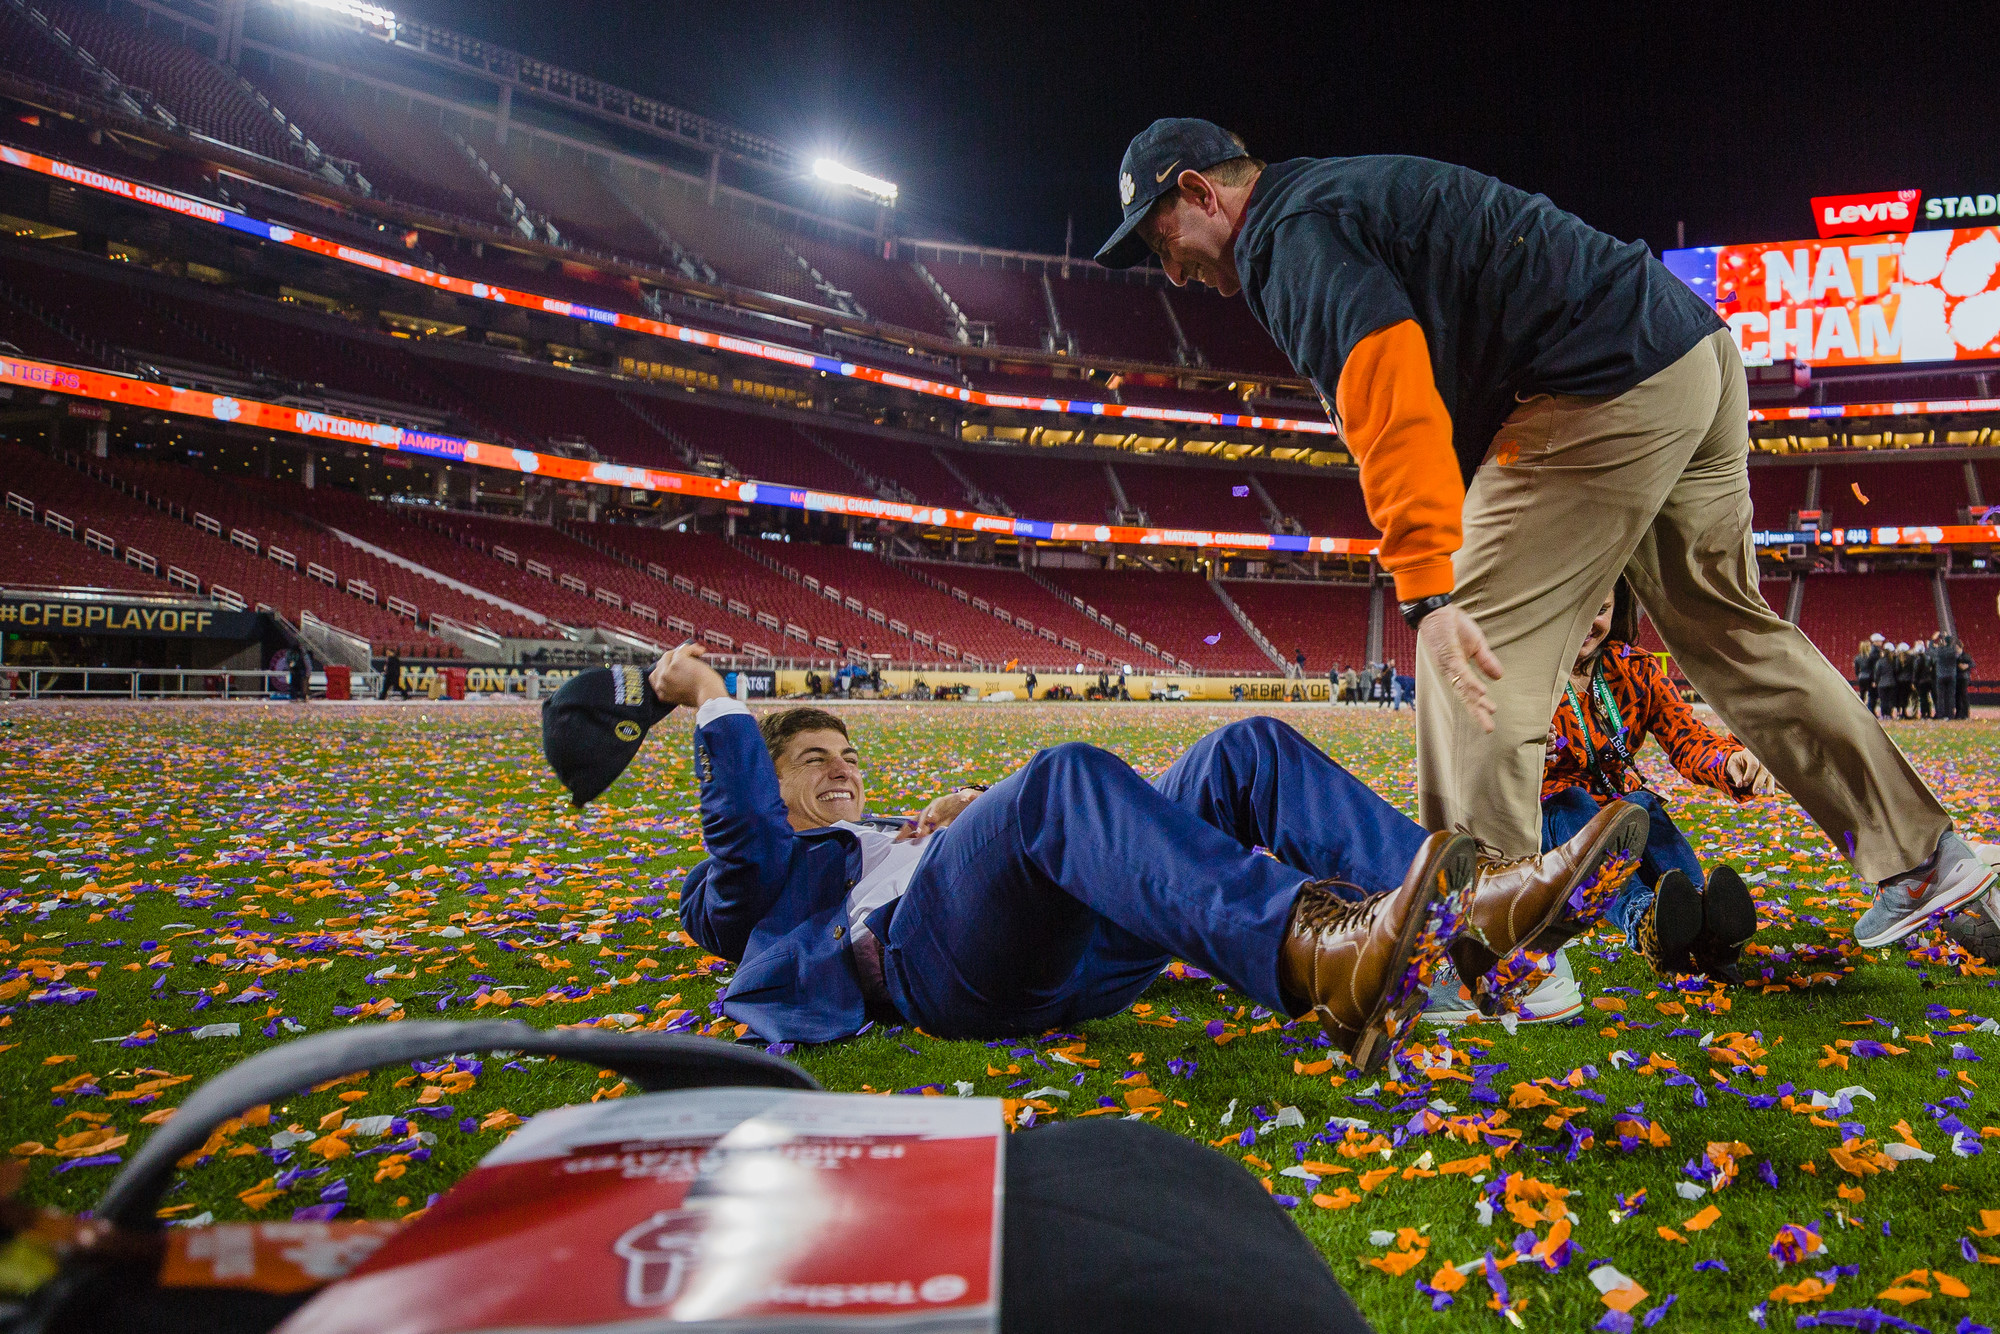 Clemson head coach Dabo Swinney finds time after everyone else left the stadium to celebrate the moment with his family after the Tigers routed Alabama 44-16 to win the CFP National Championship at Levi's Stadium in Santa Clara, California, on Monday, Jan. 7.